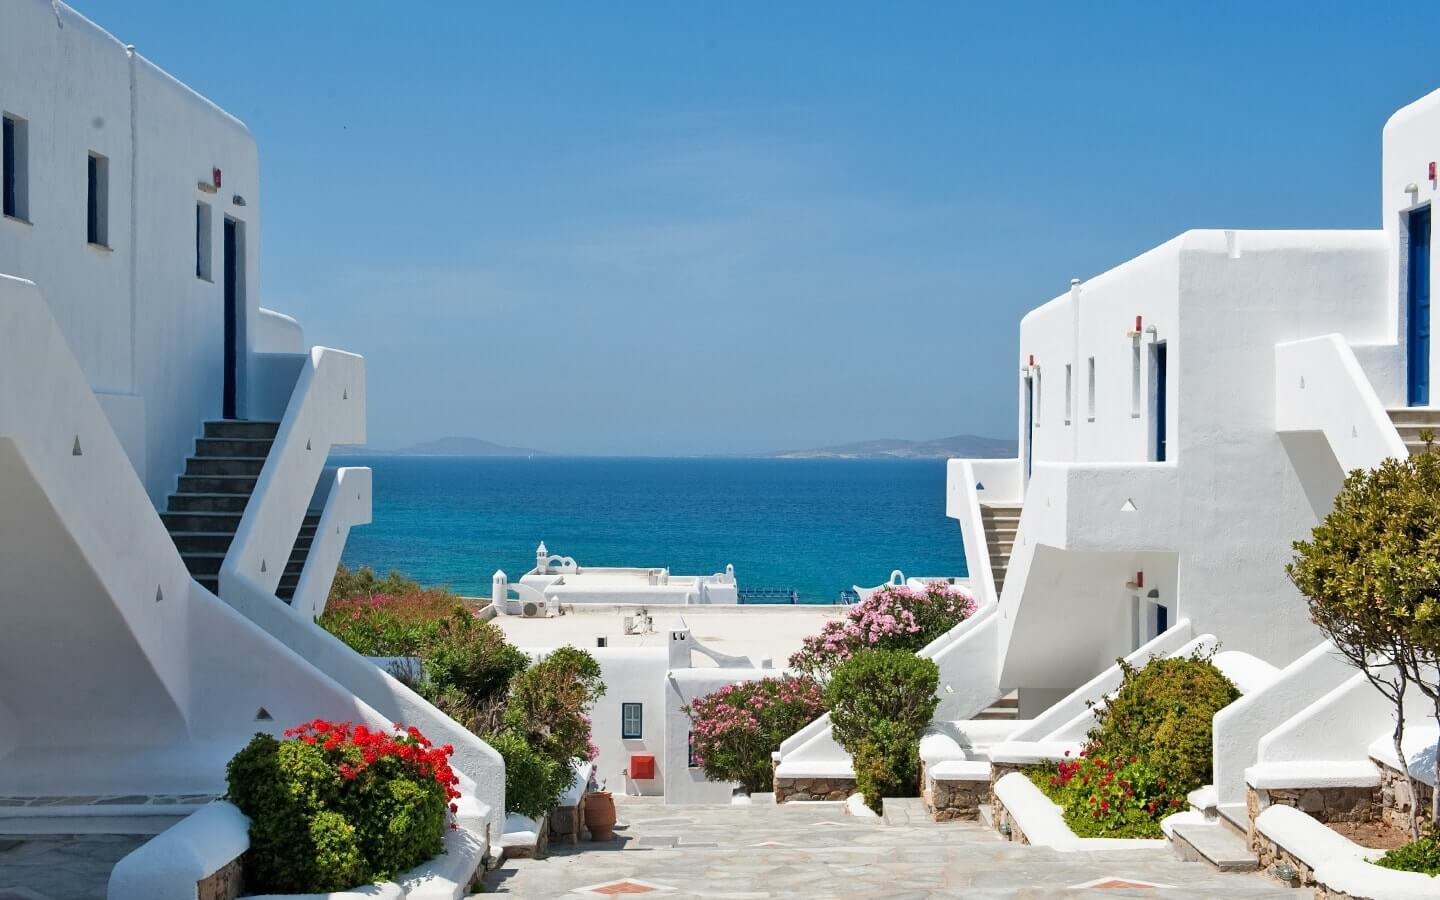 Trees & flowers line the pathways at San Marco Luxury Hotel & Villas in Houlakia bay, Mykonos